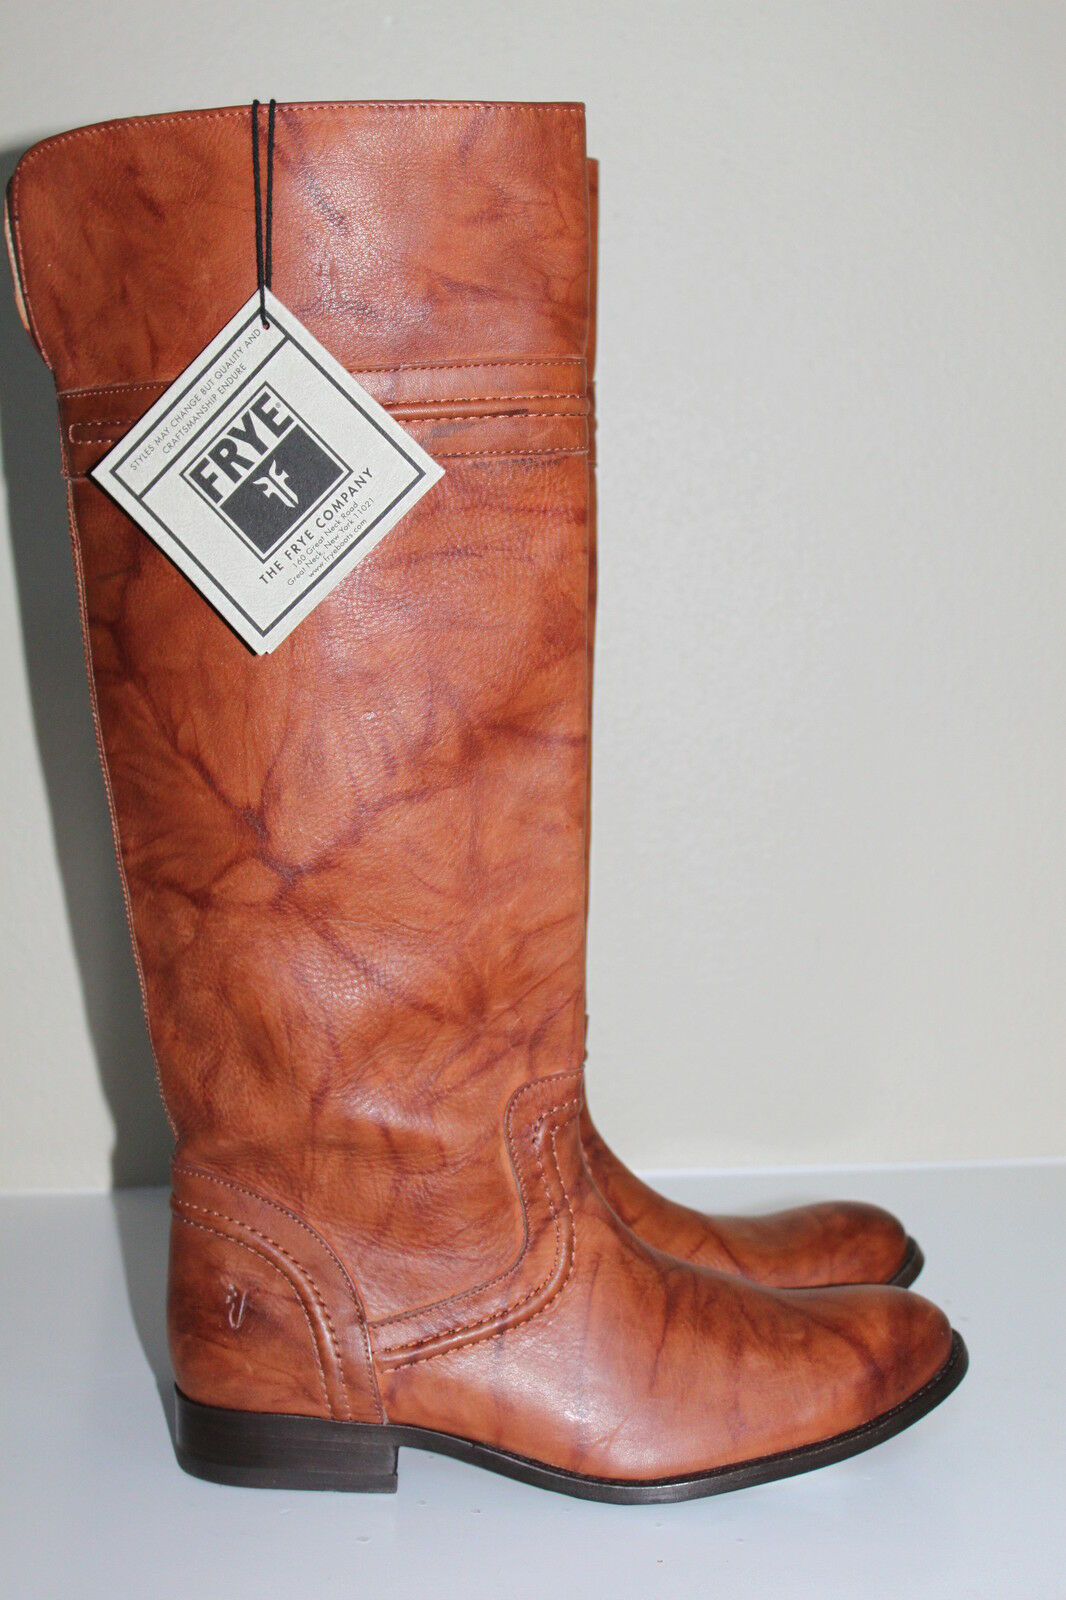 Frye Melissa Trapunto Brown Leather Tall Riding Boots Low Heel shoes sz 6